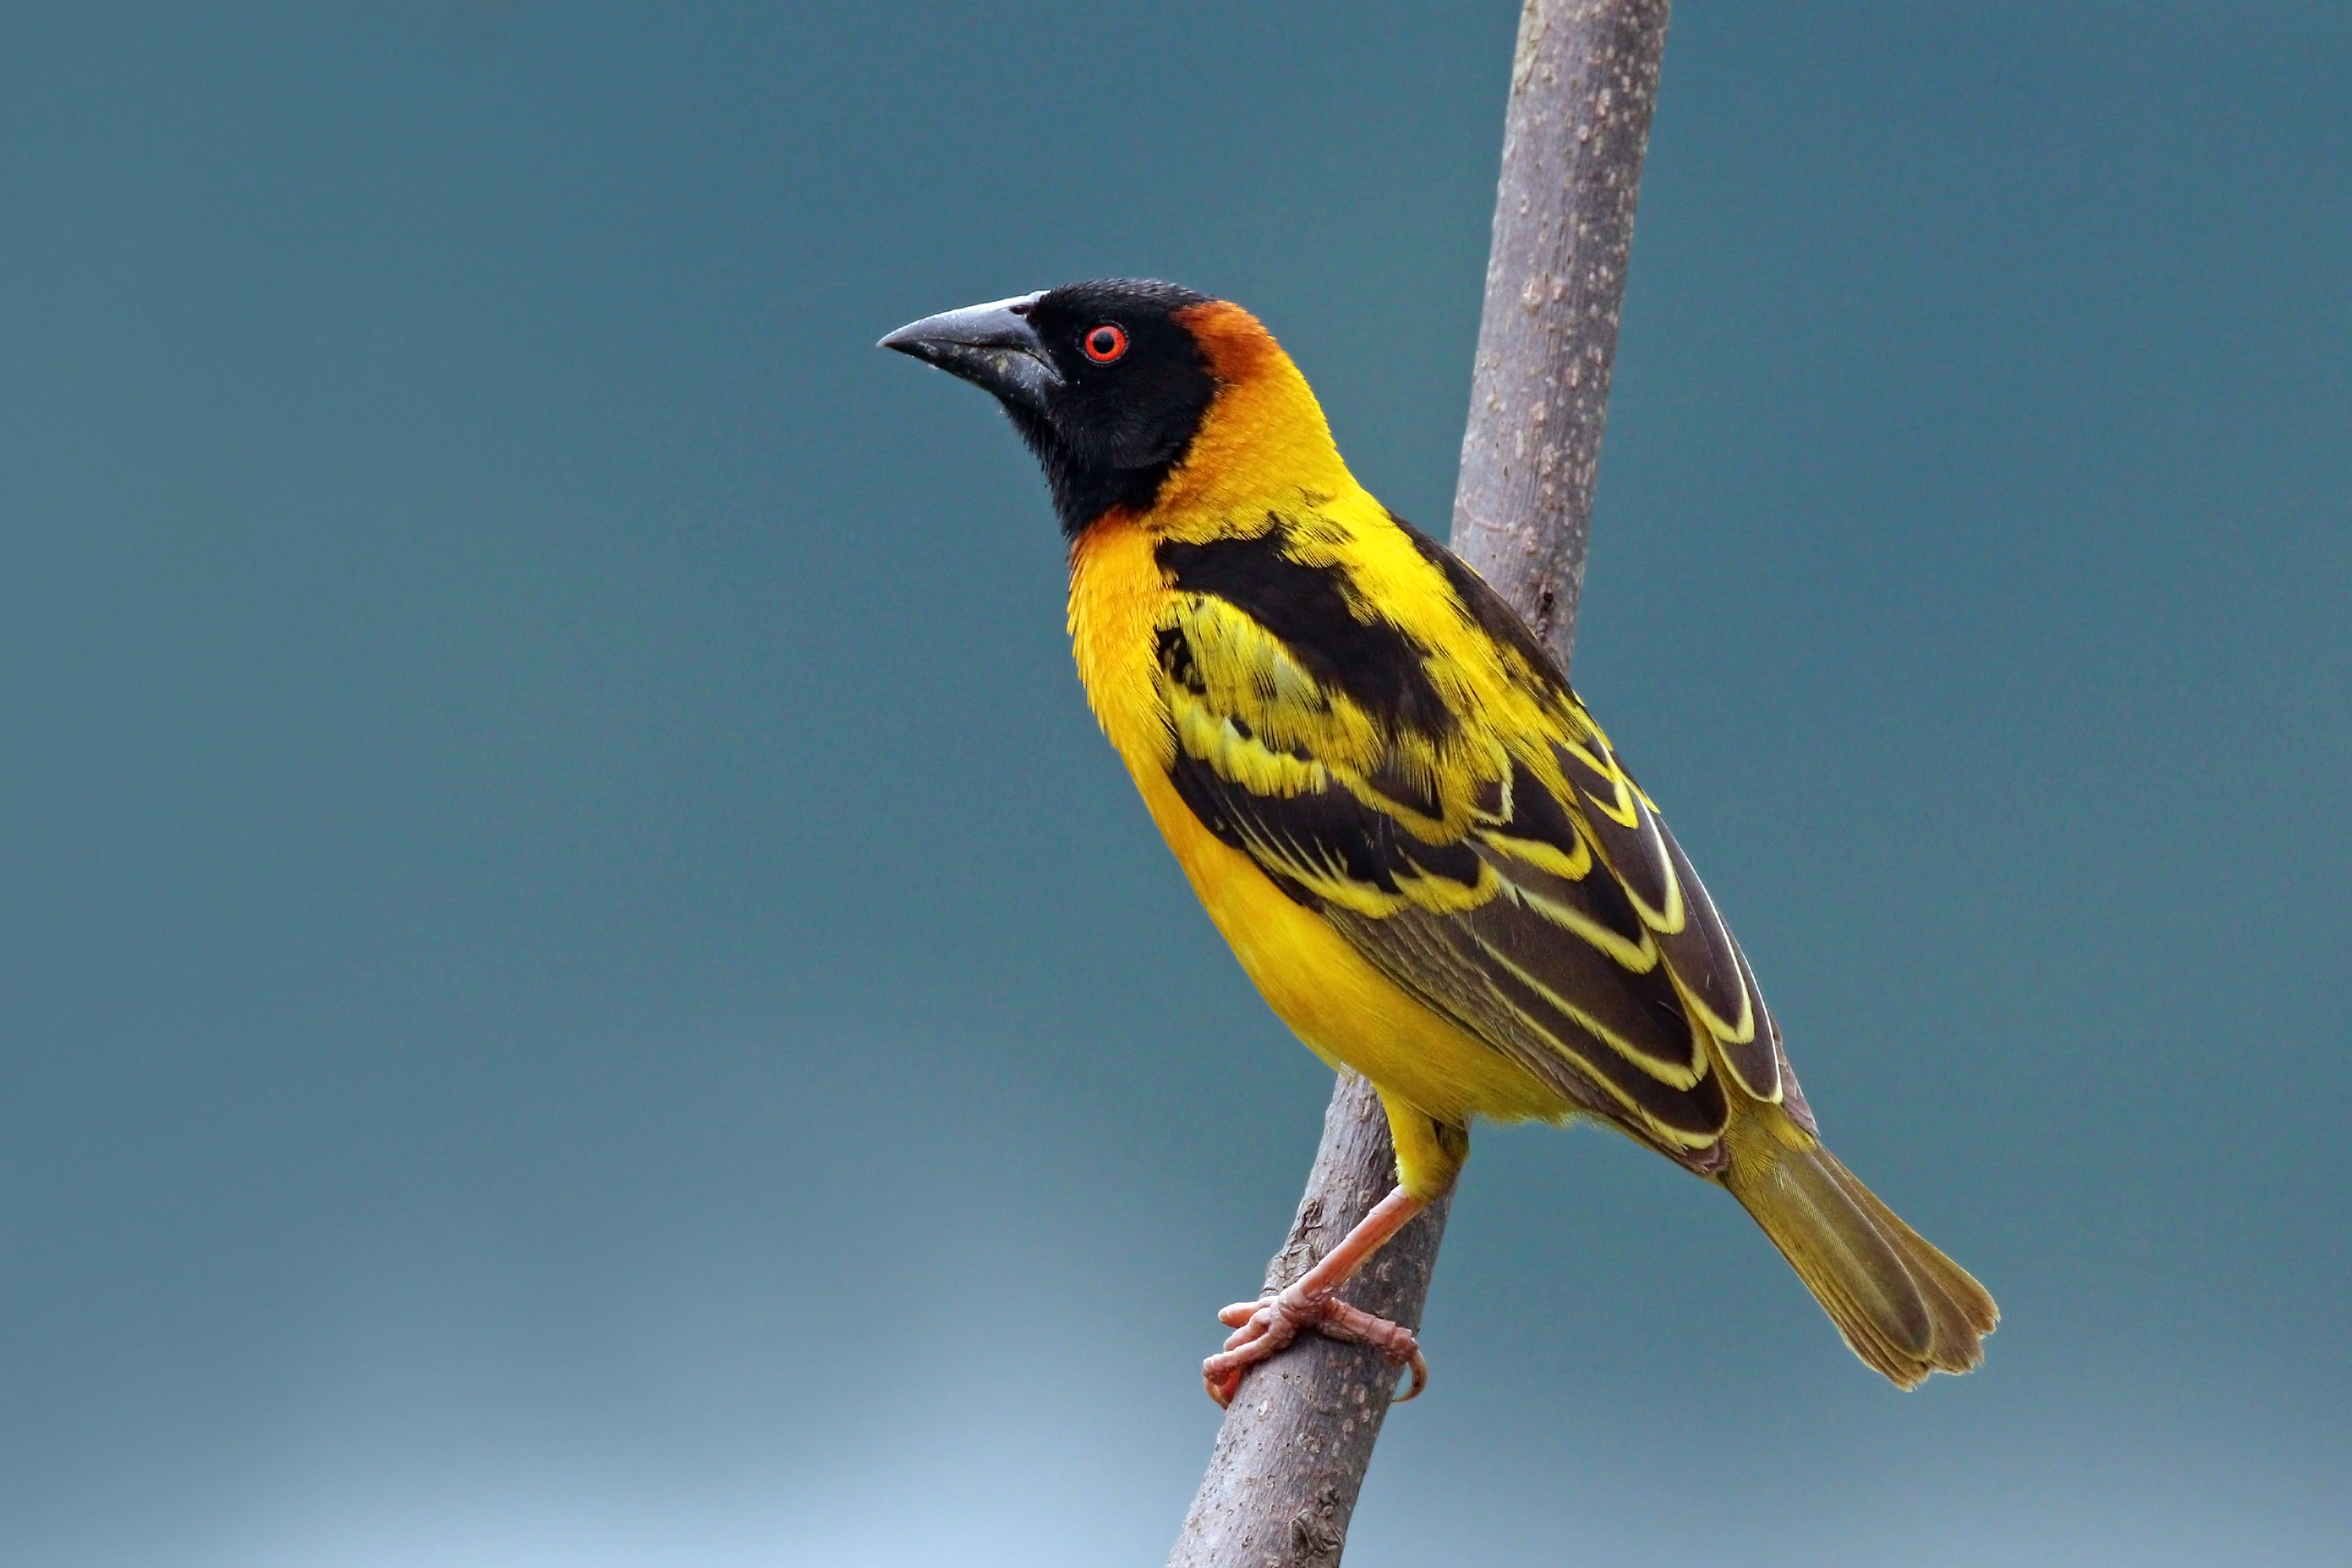 https://upload.wikimedia.org/wikipedia/commons/1/17/Black-headed_weaver_%28Ploceus_cucullatus_bohndorffi%29_male.jpg